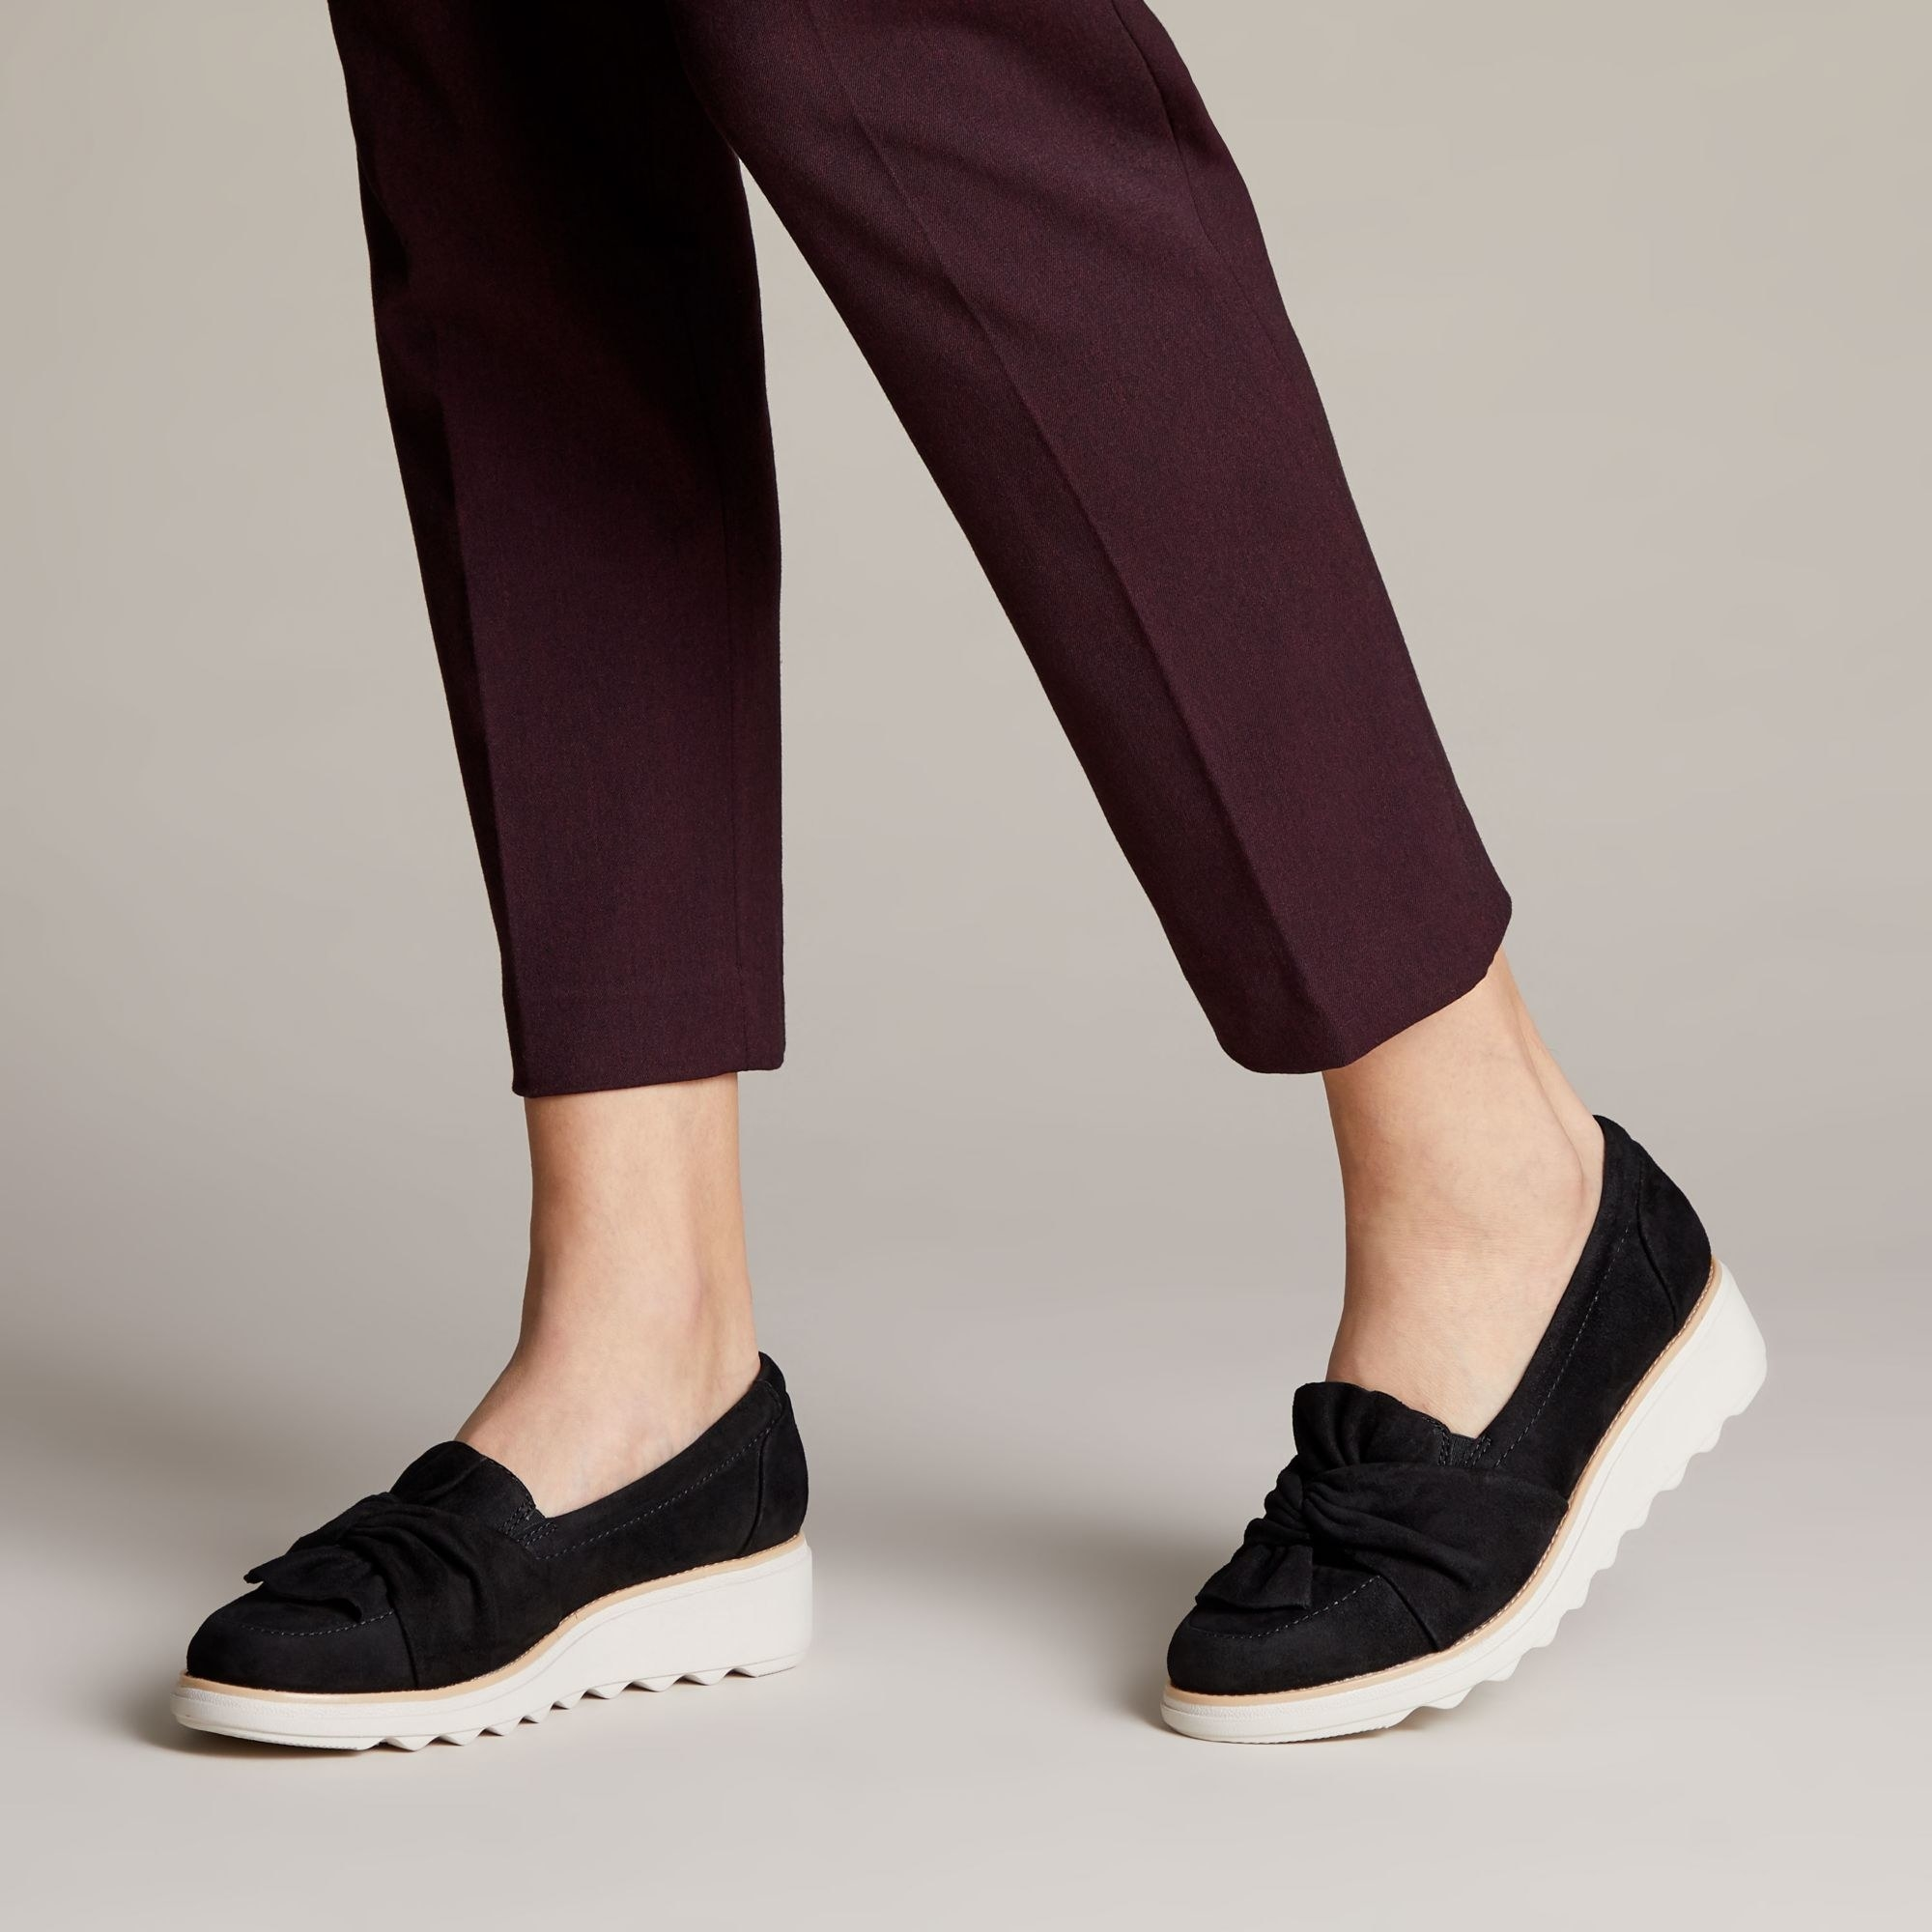 knot front loafers with elevated grooved soles